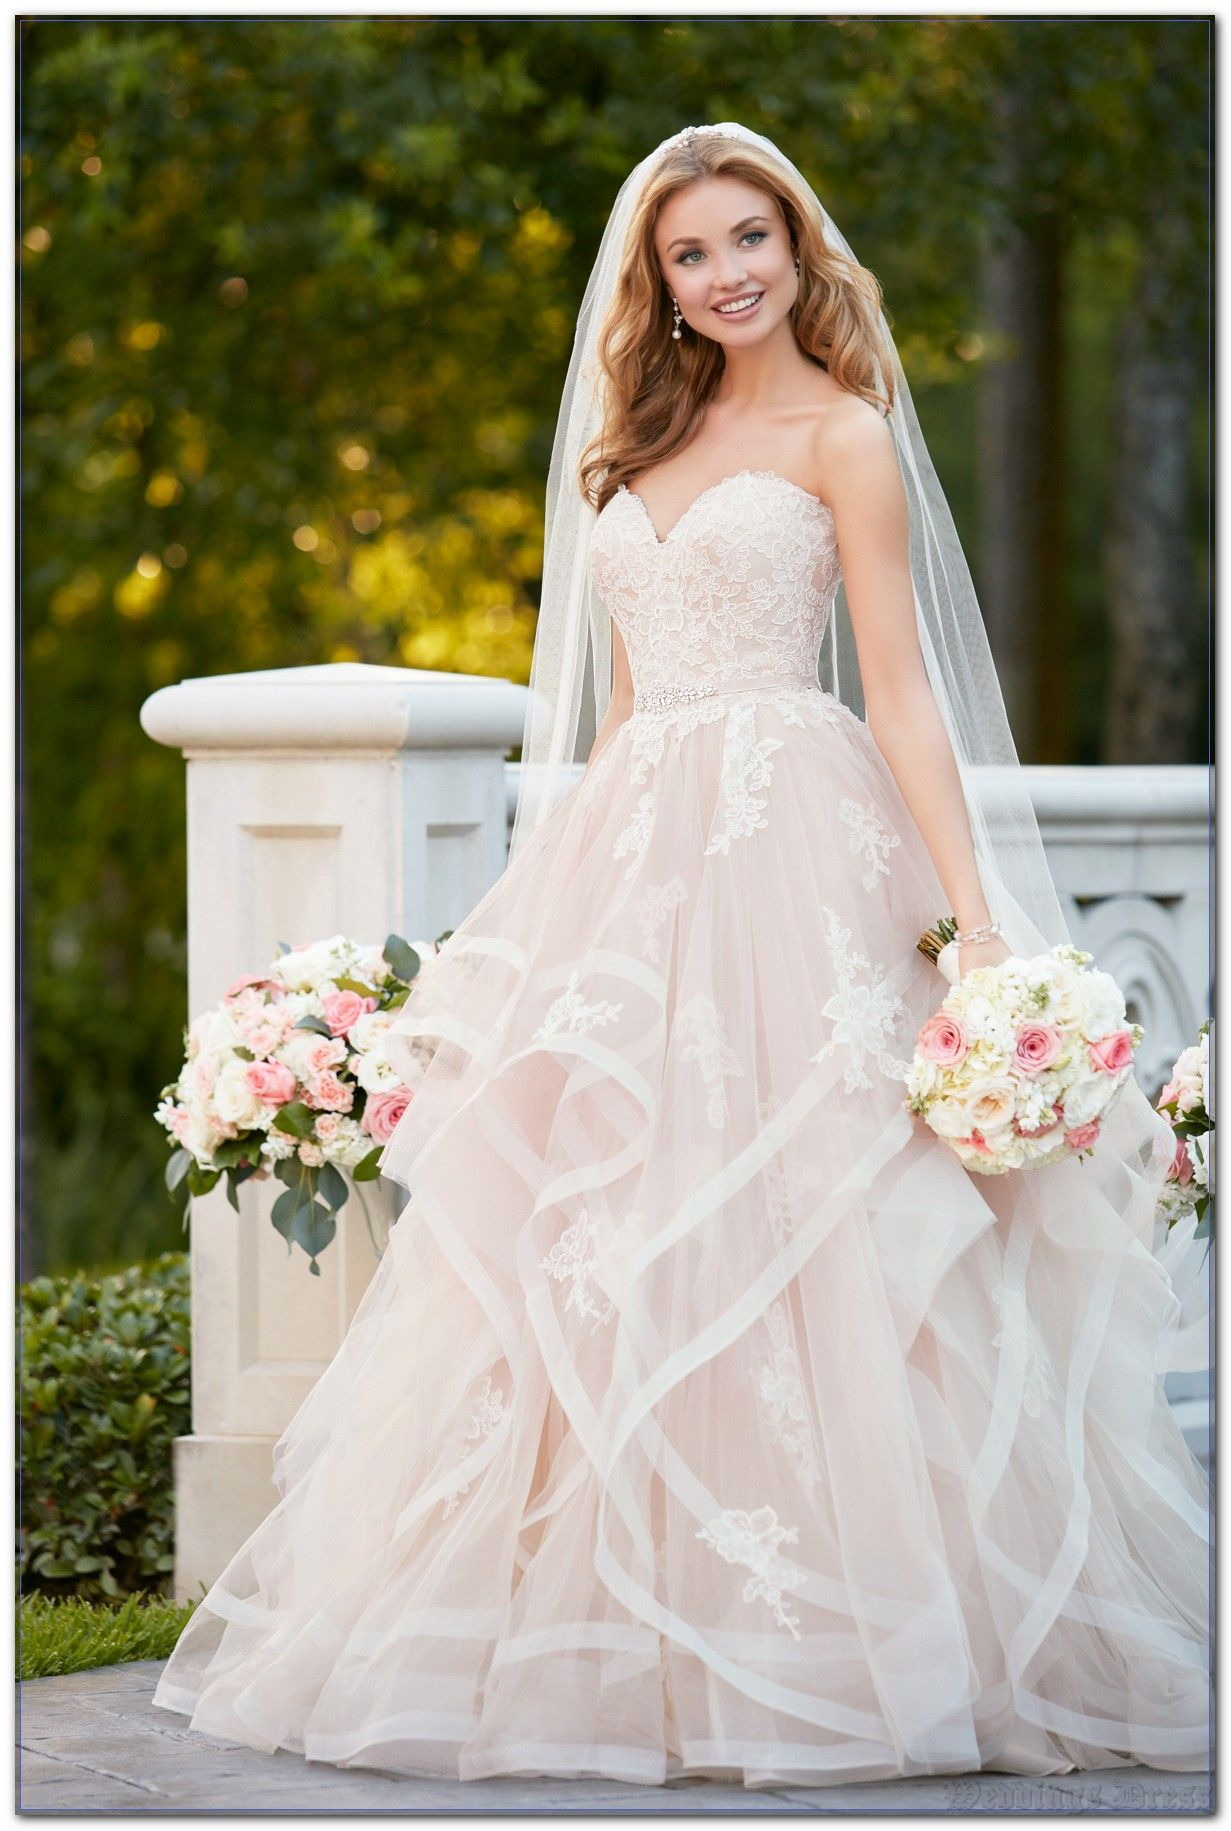 How To Use Weddings Dress To Desire